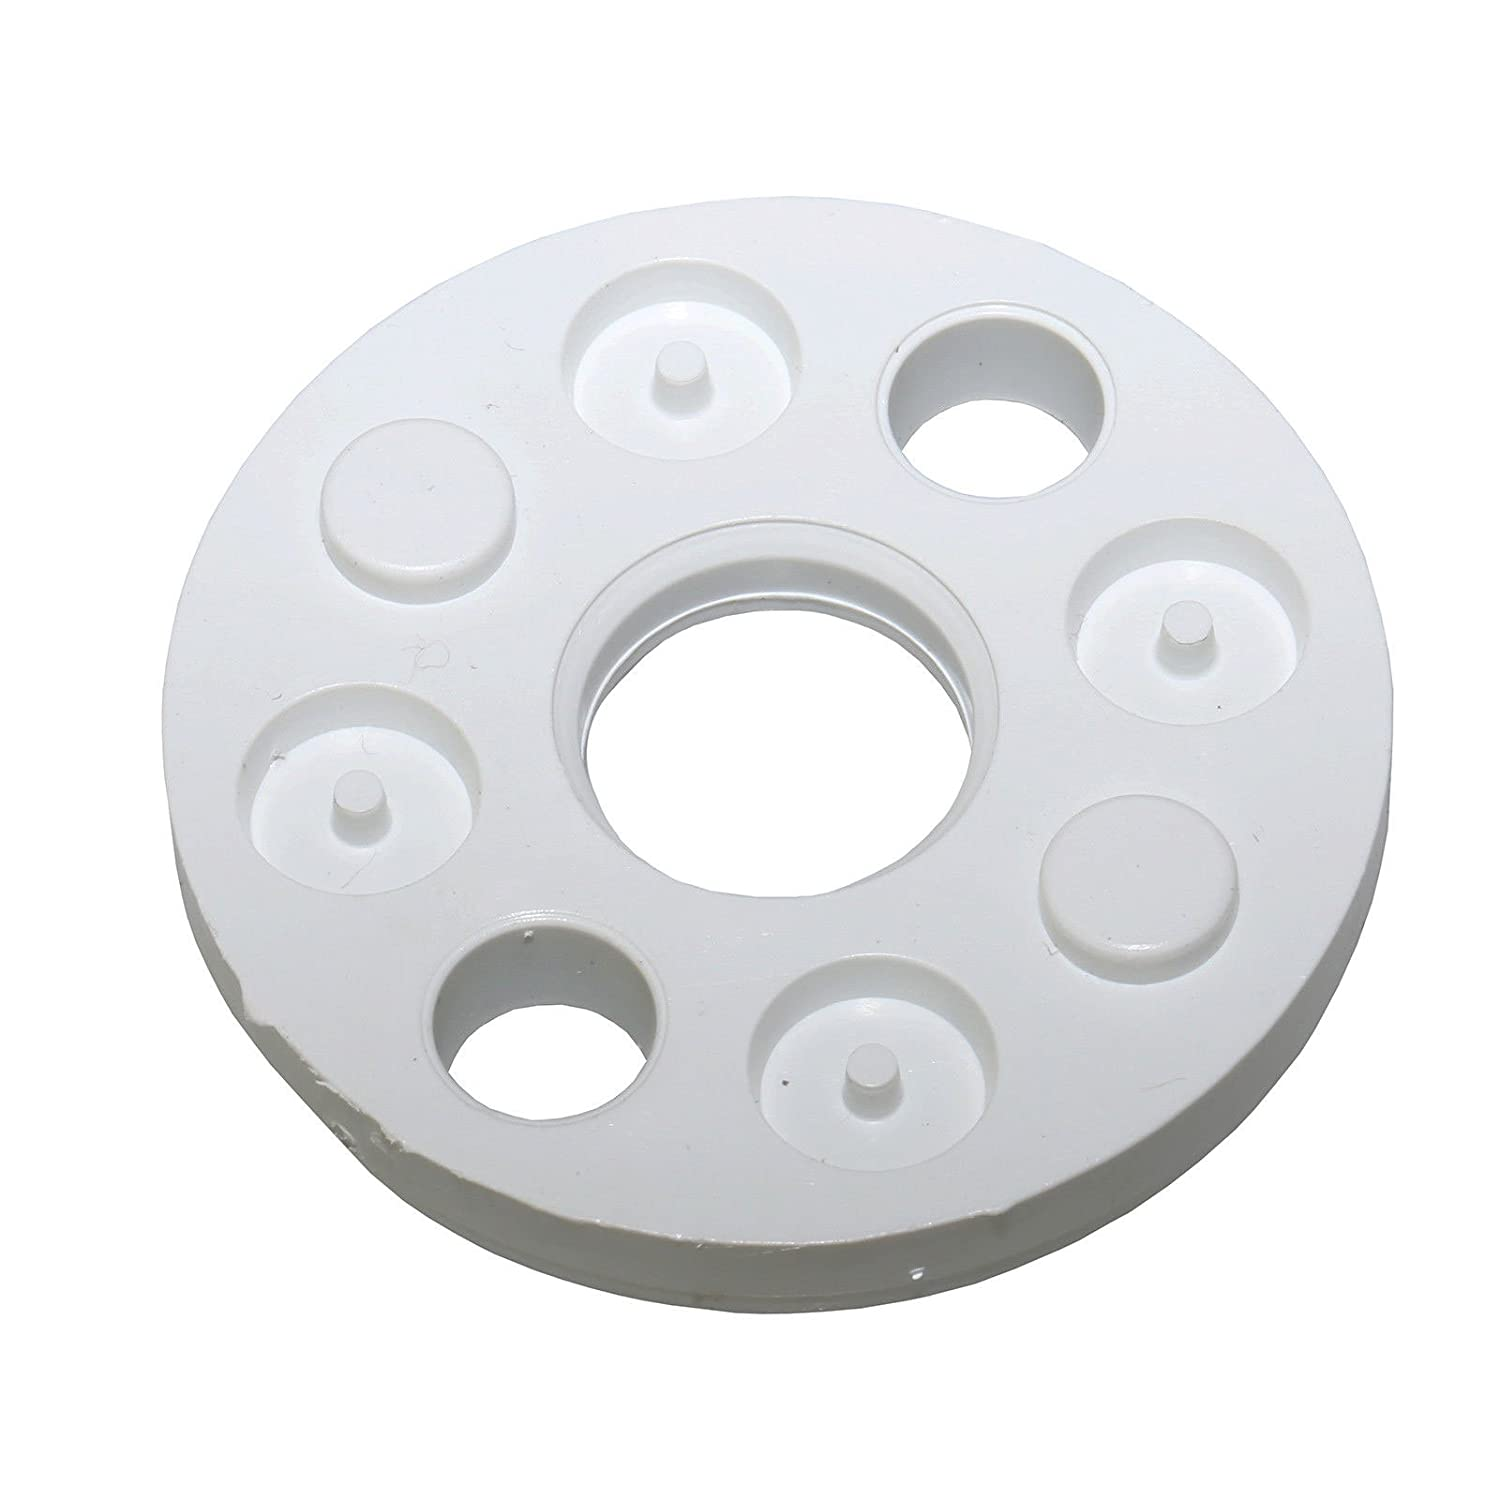 First4spares 4 Pack of Blade Spacer Washers For Most Flymo Lawnmowers